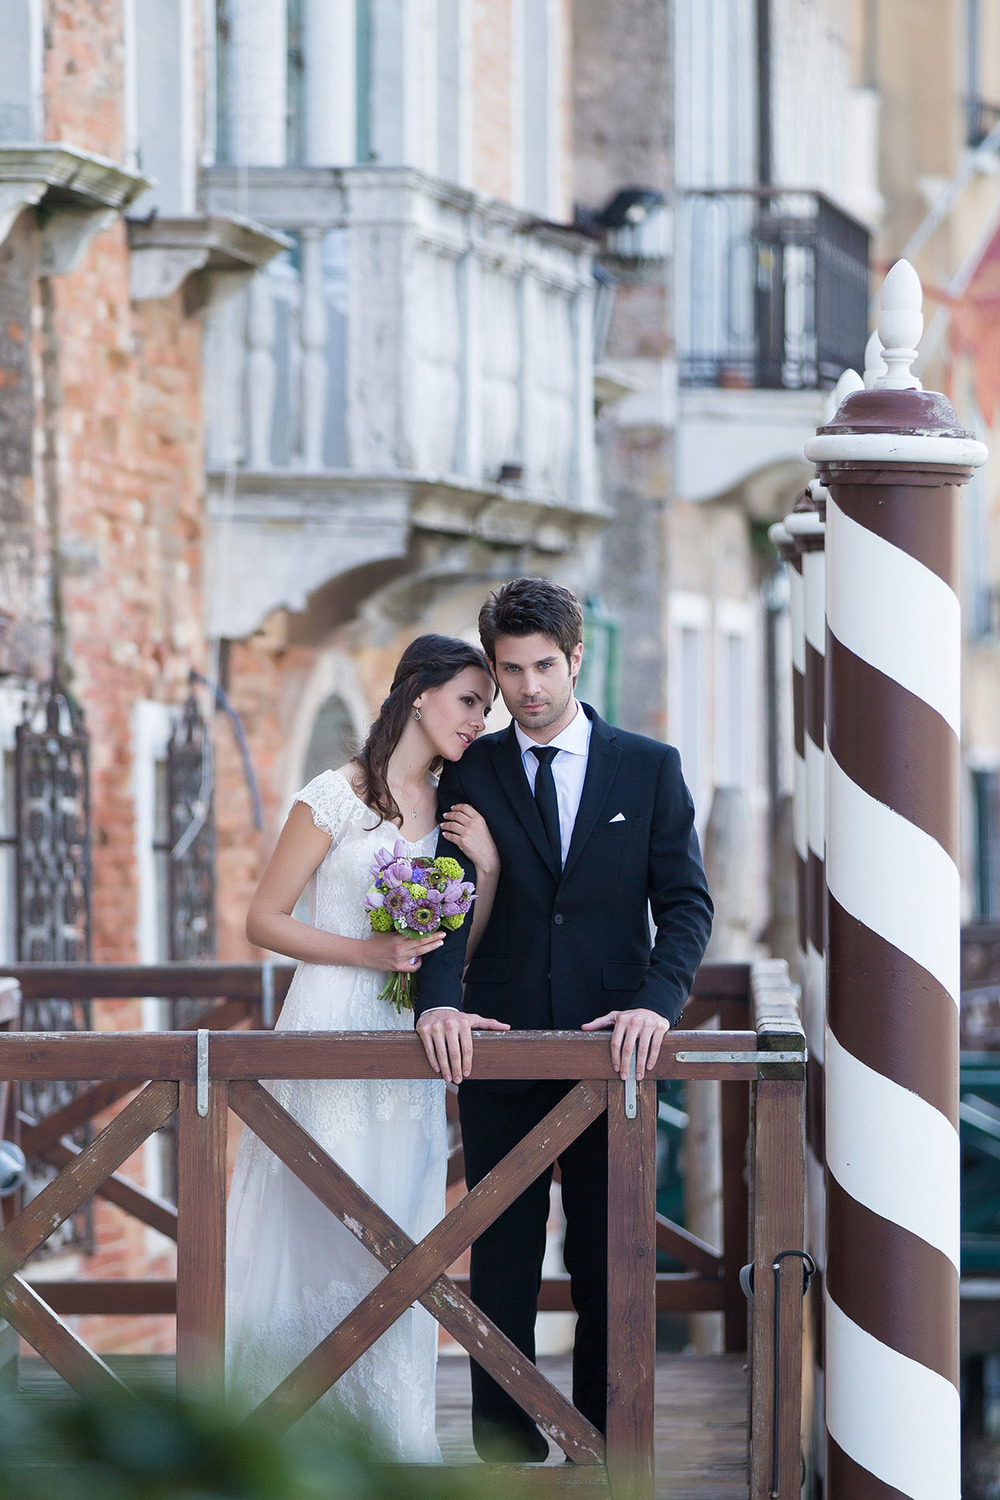 VeniceStyledShoot (74 of 170).jpg